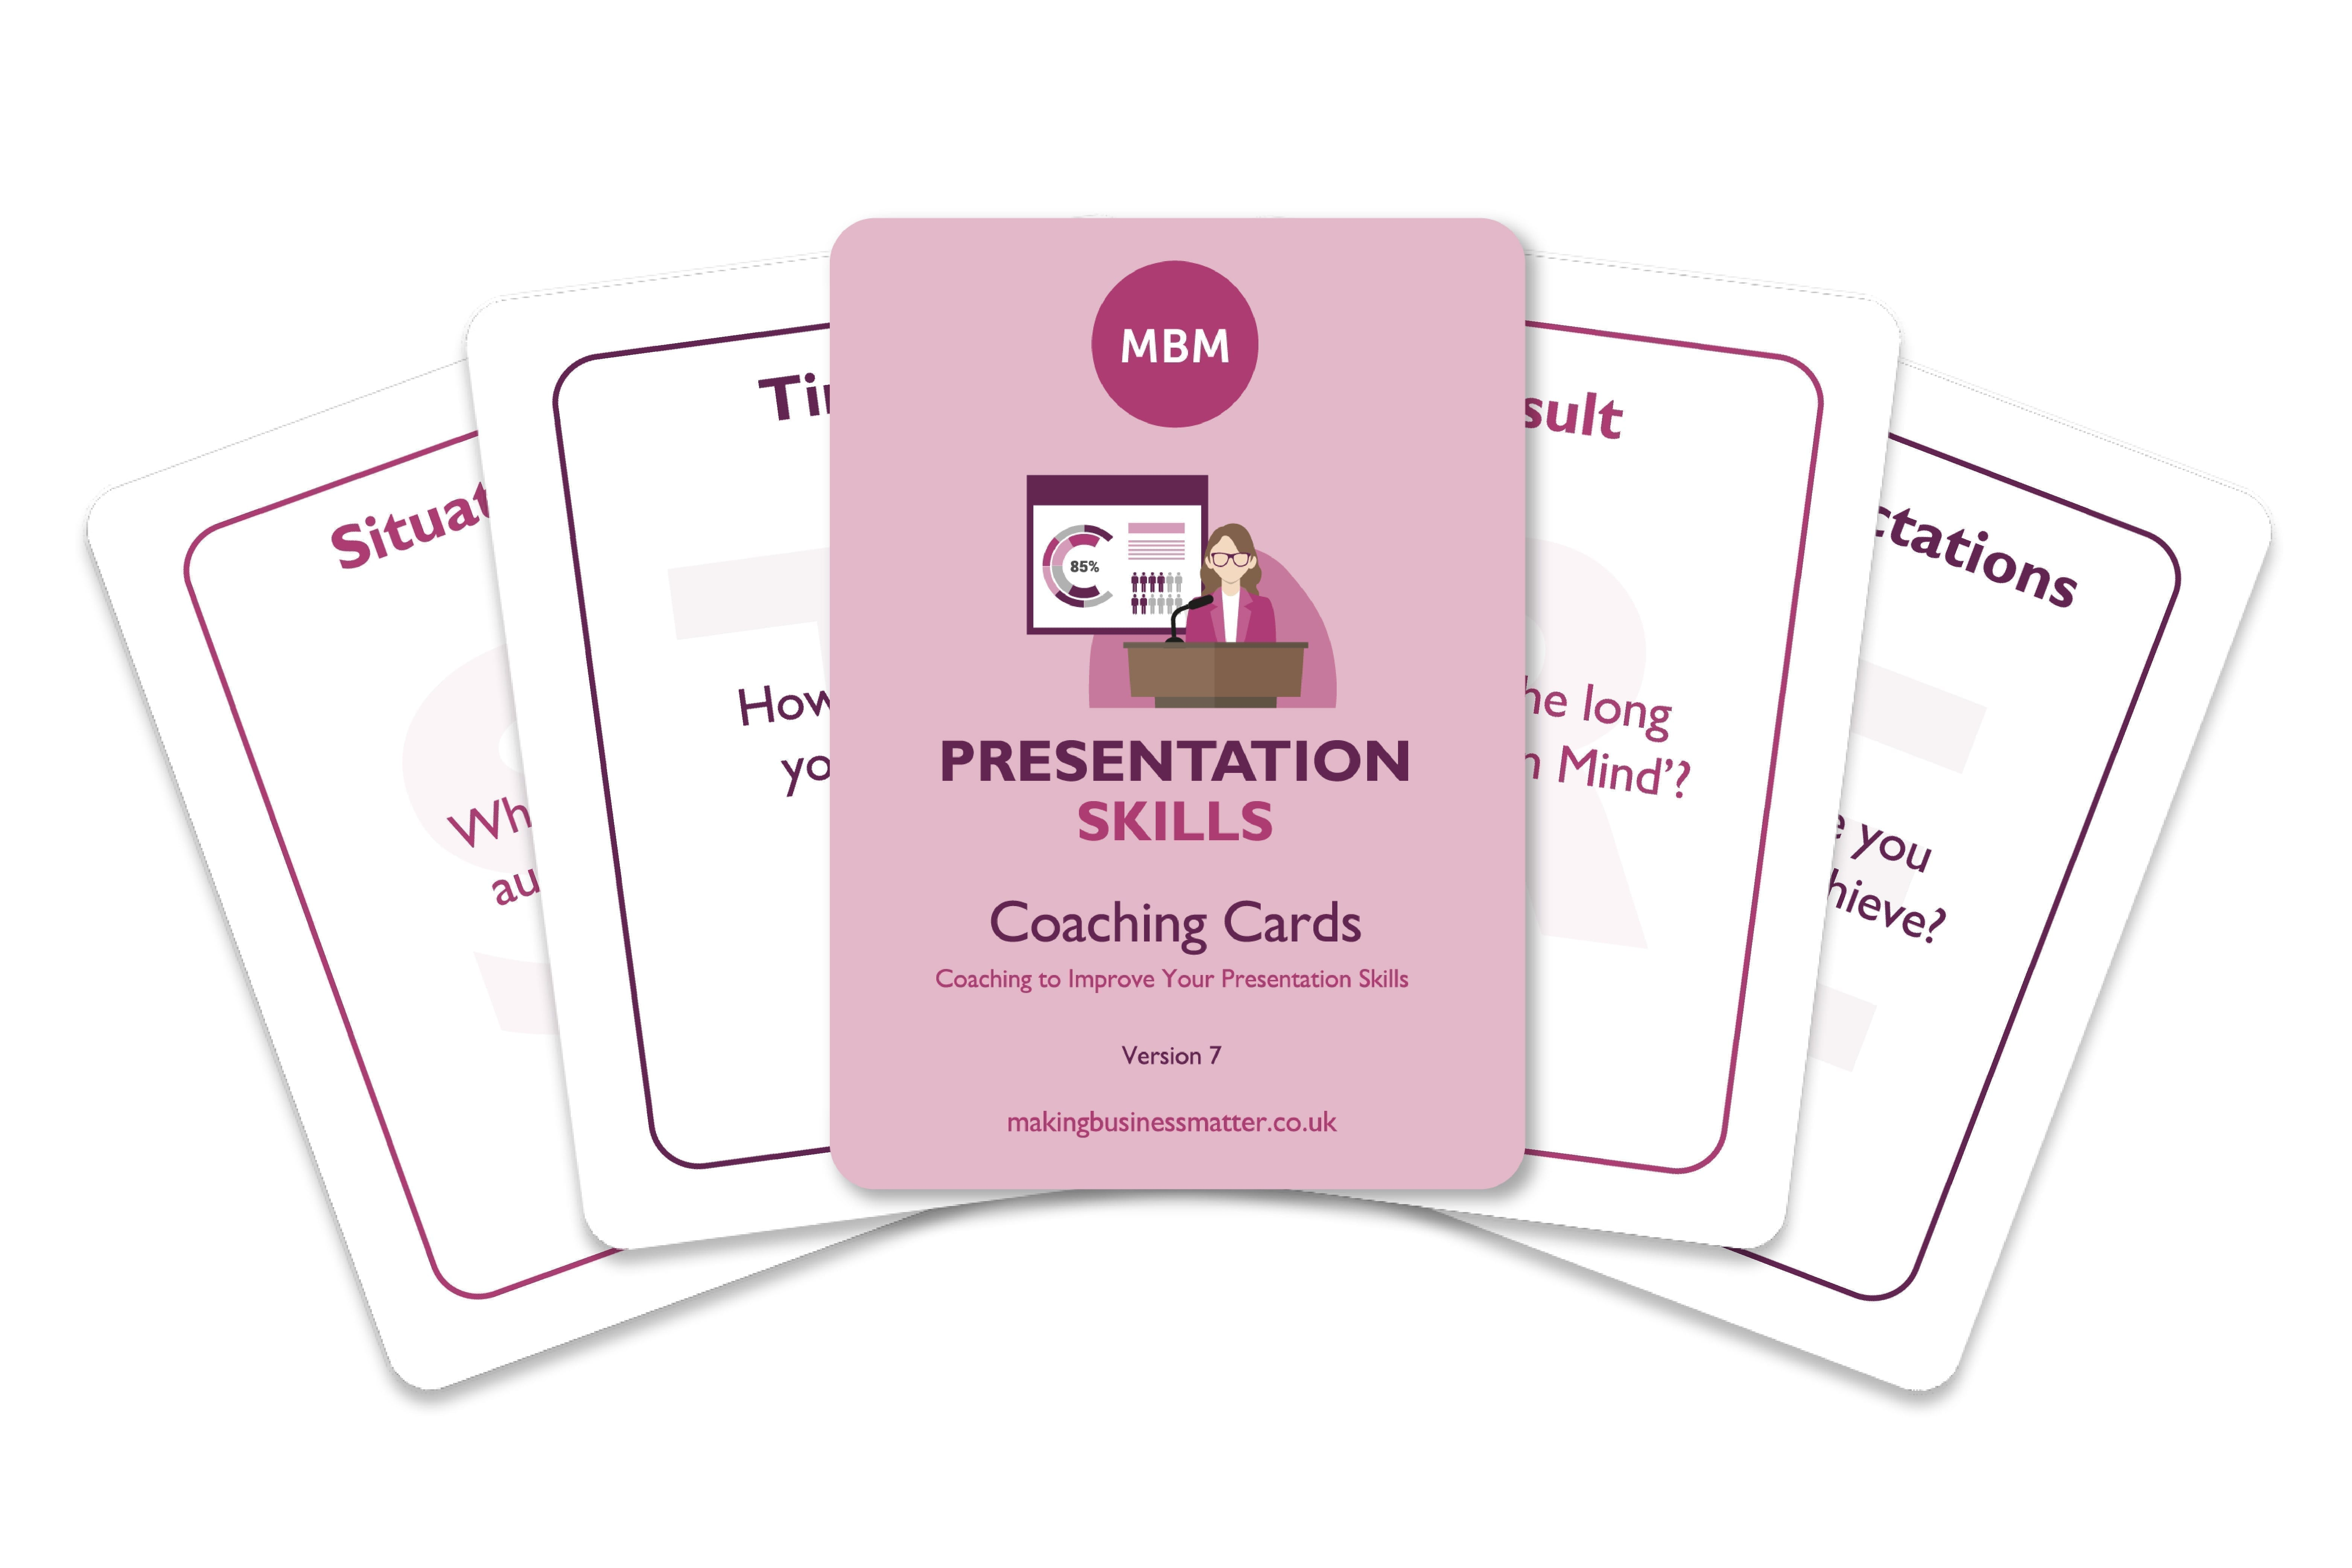 Presentation Skills Coaching Cards